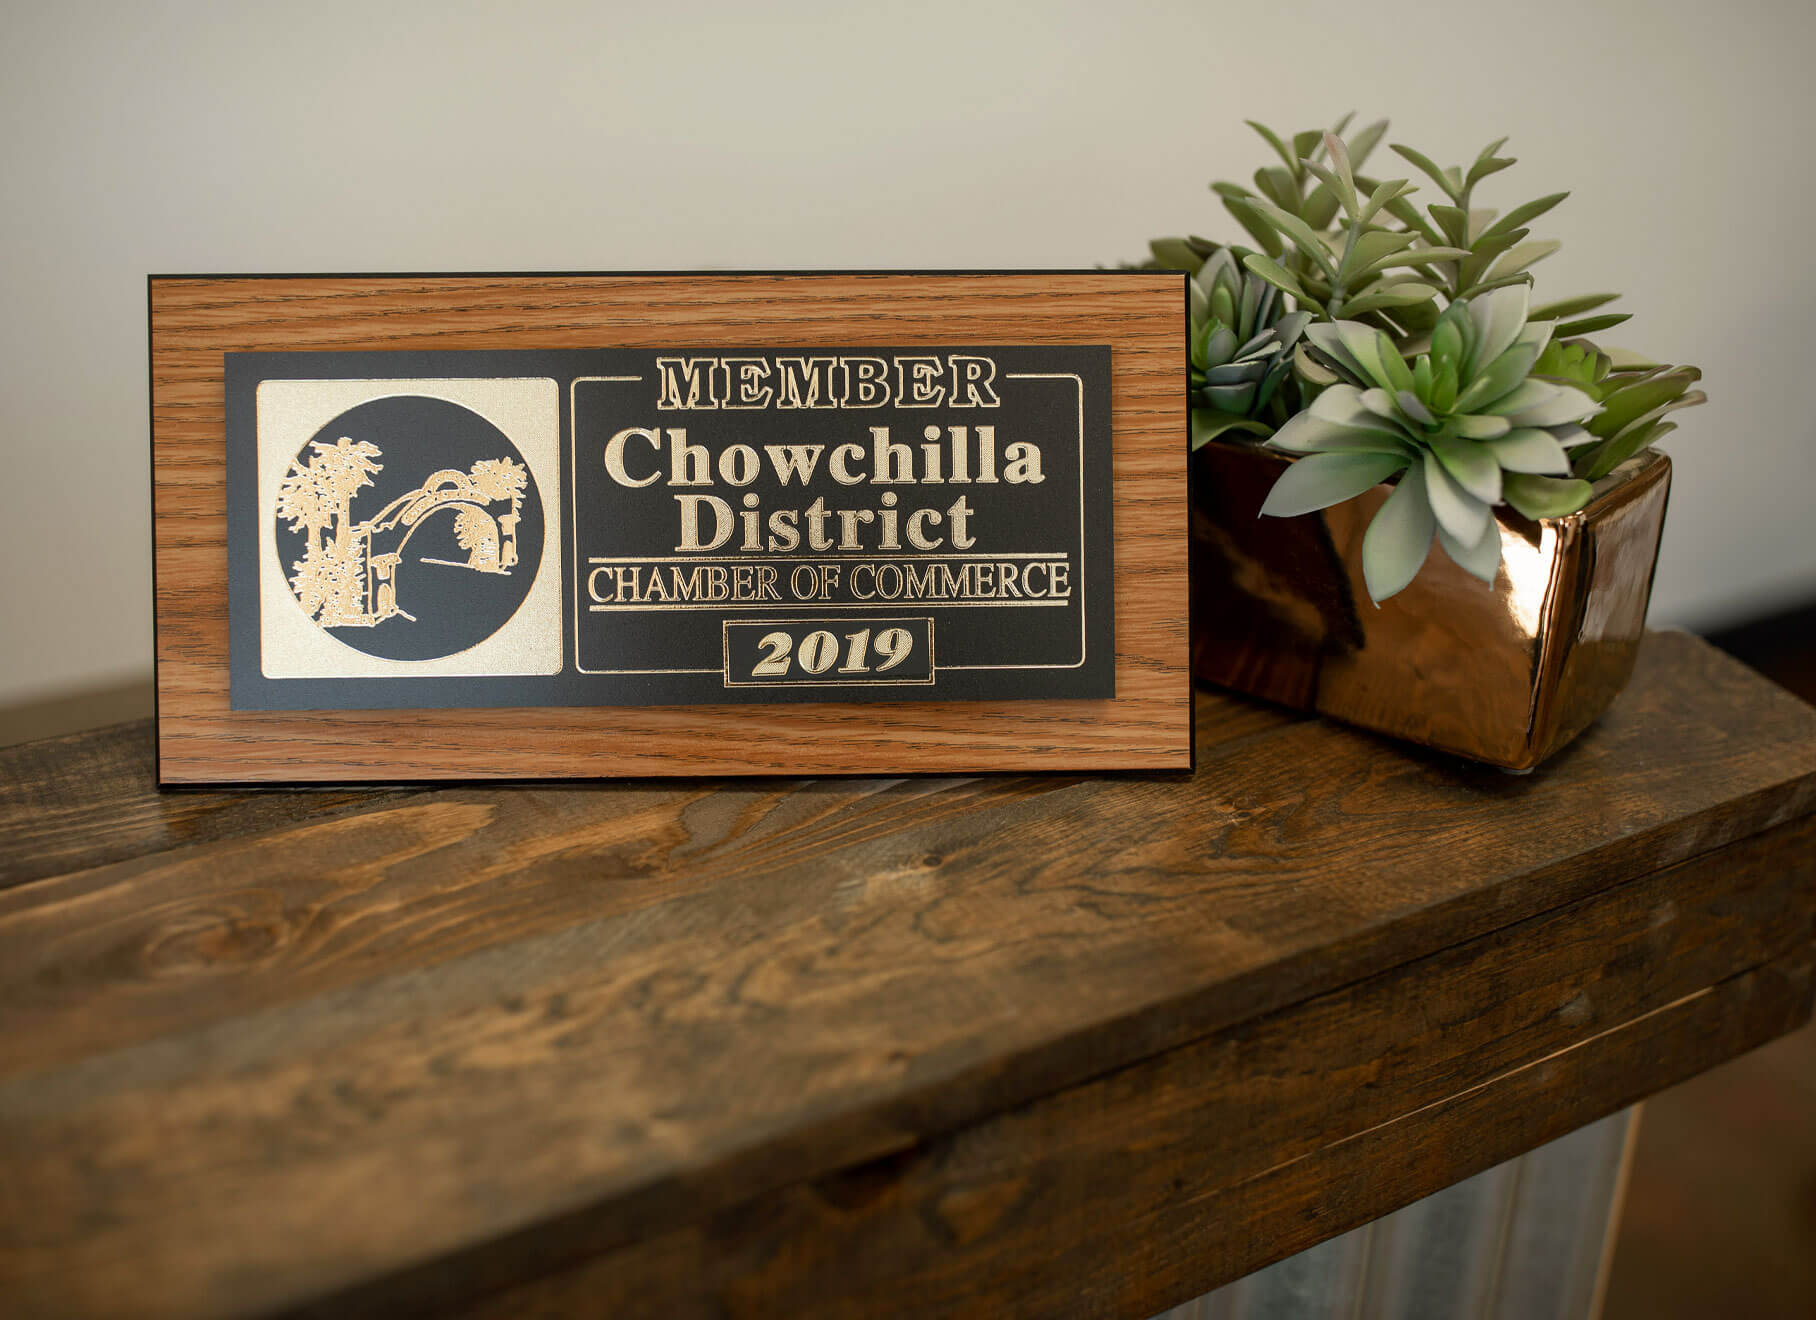 Chowchilla Chamber of Commerce - Farmcom Real Estate